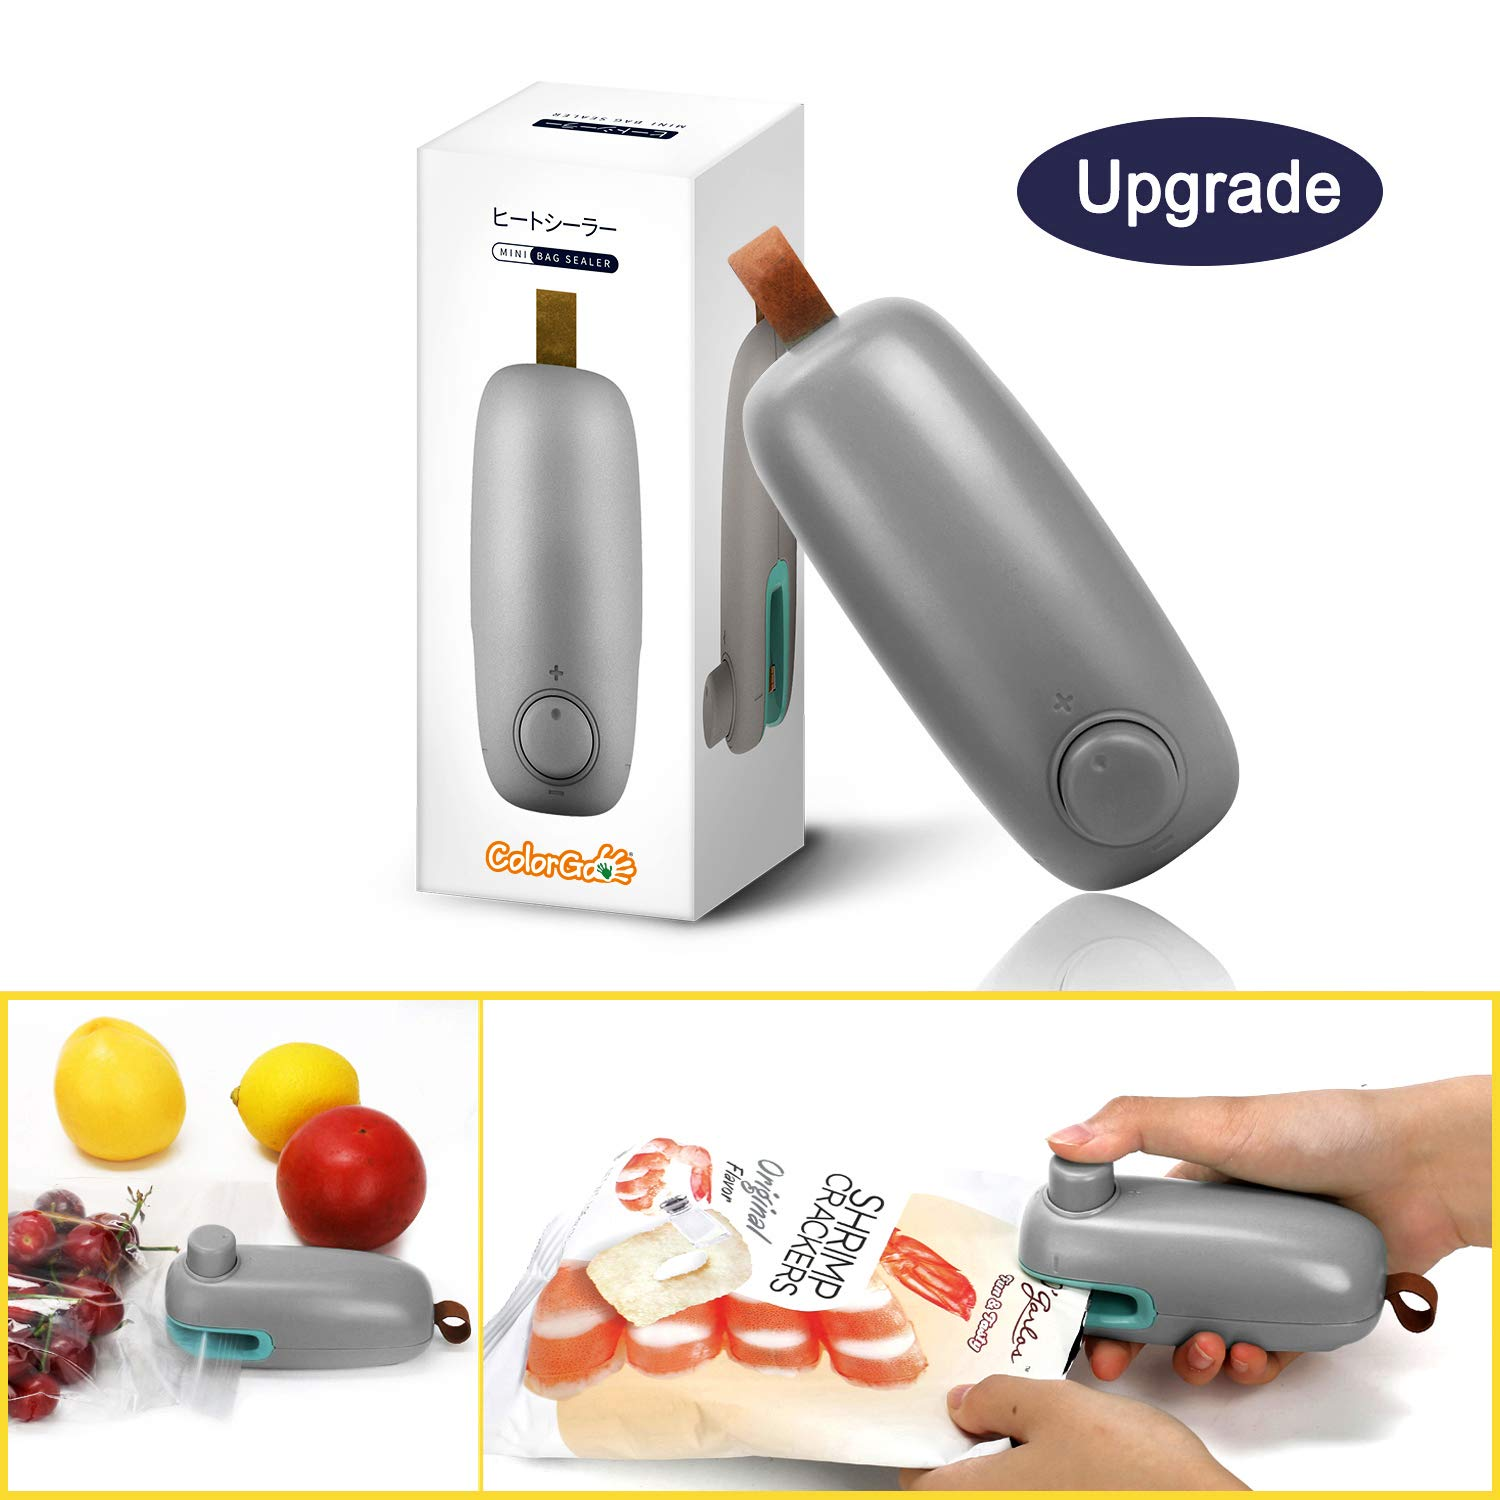 ColorGo Potato Chip Bag Sealer, Handheld Mini Heat Resealer Machine For Plastic Food Storage Gray [Upgrade Version & Patent Protect] by ColorGo